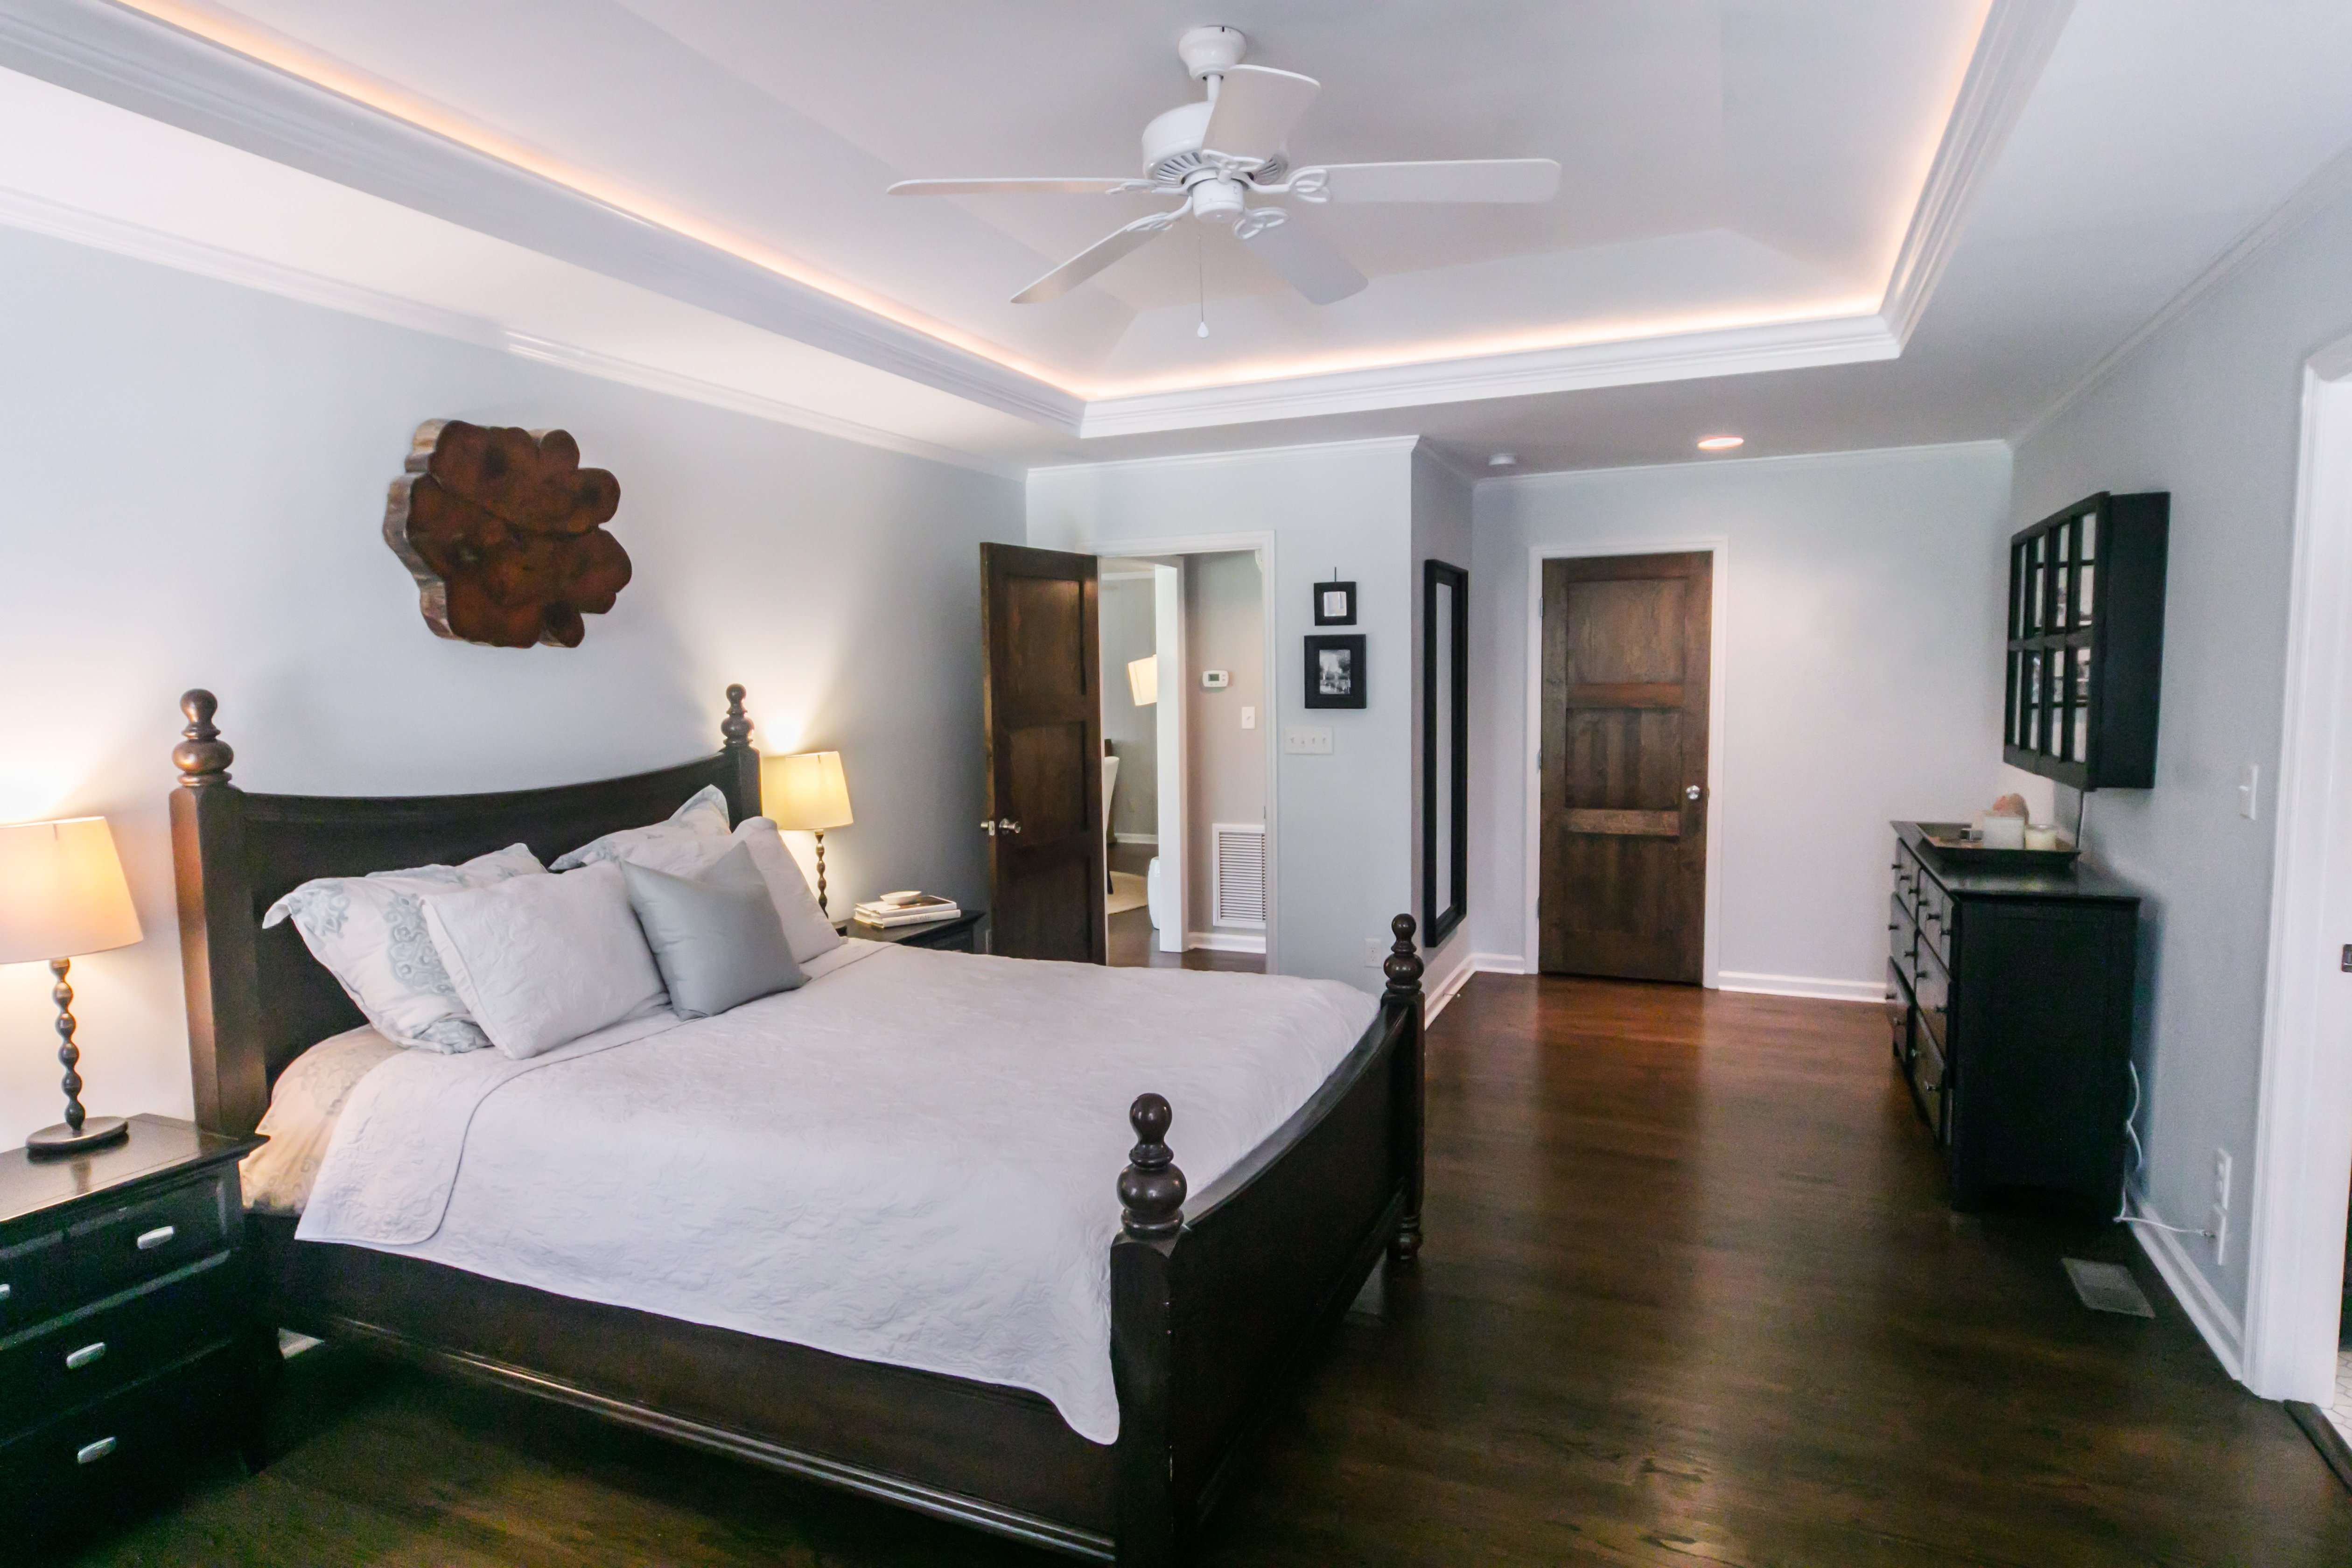 2020 False Ceiling Designs For Bedroom Homelane Blog